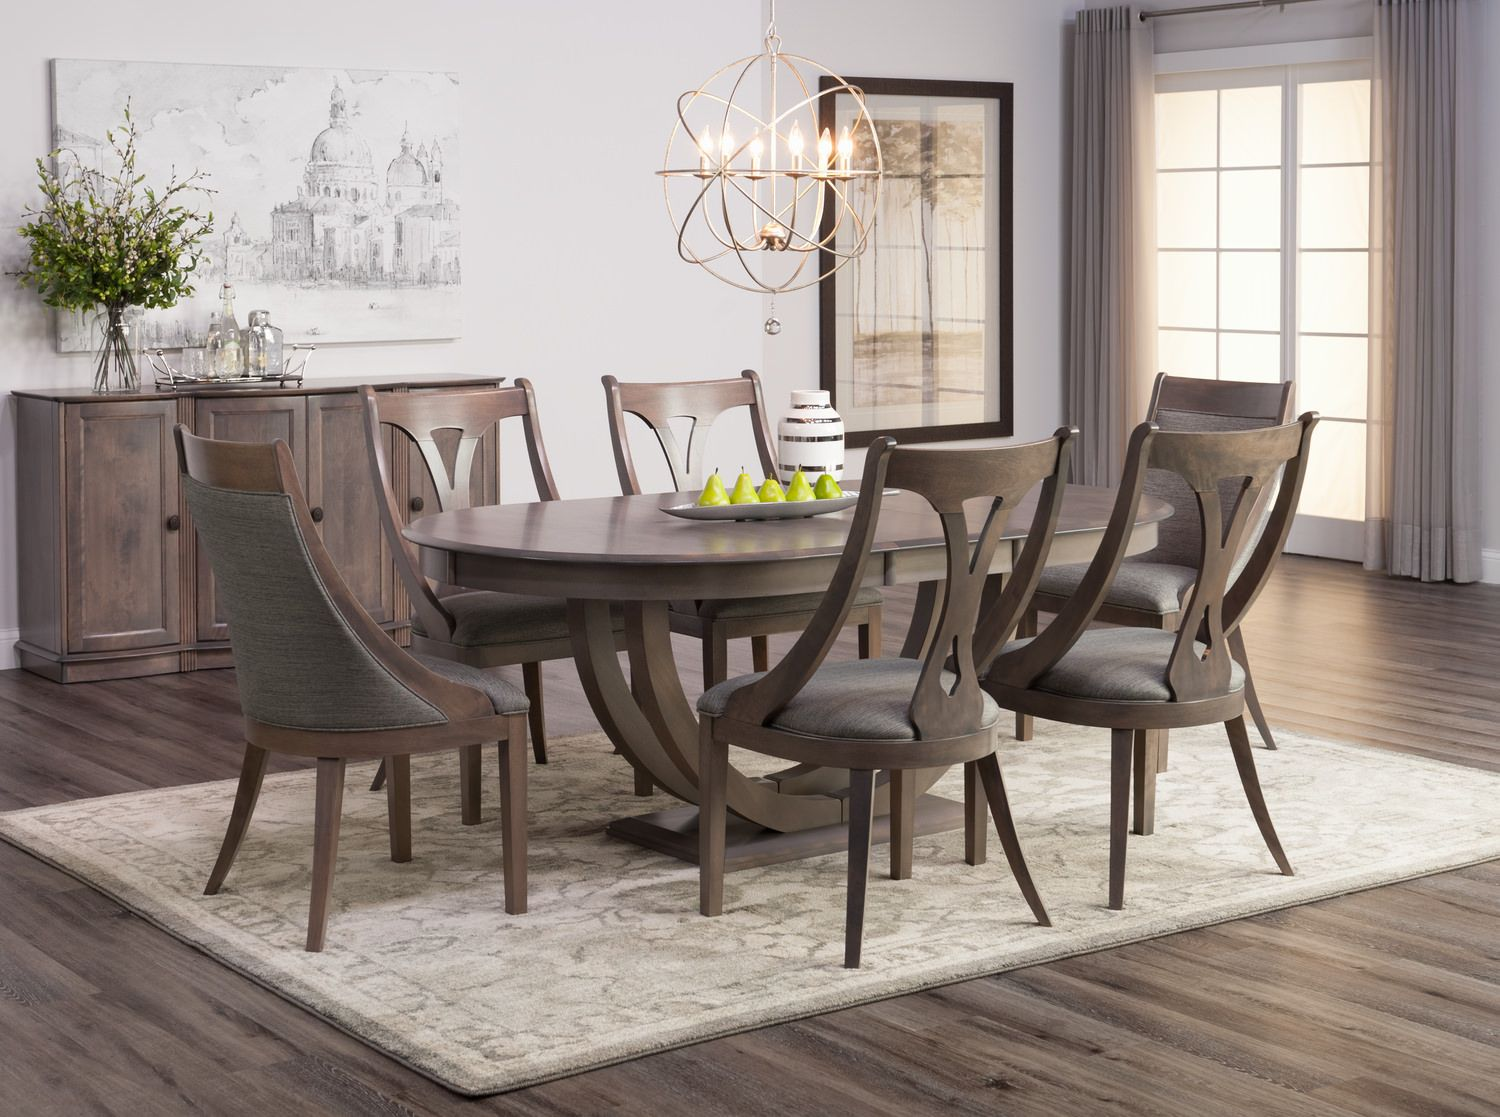 Simonne Oval Dining Table With 4 Sling Chairs And 2 Host Chairs Oval Table Dining Dining Table Hom Furniture